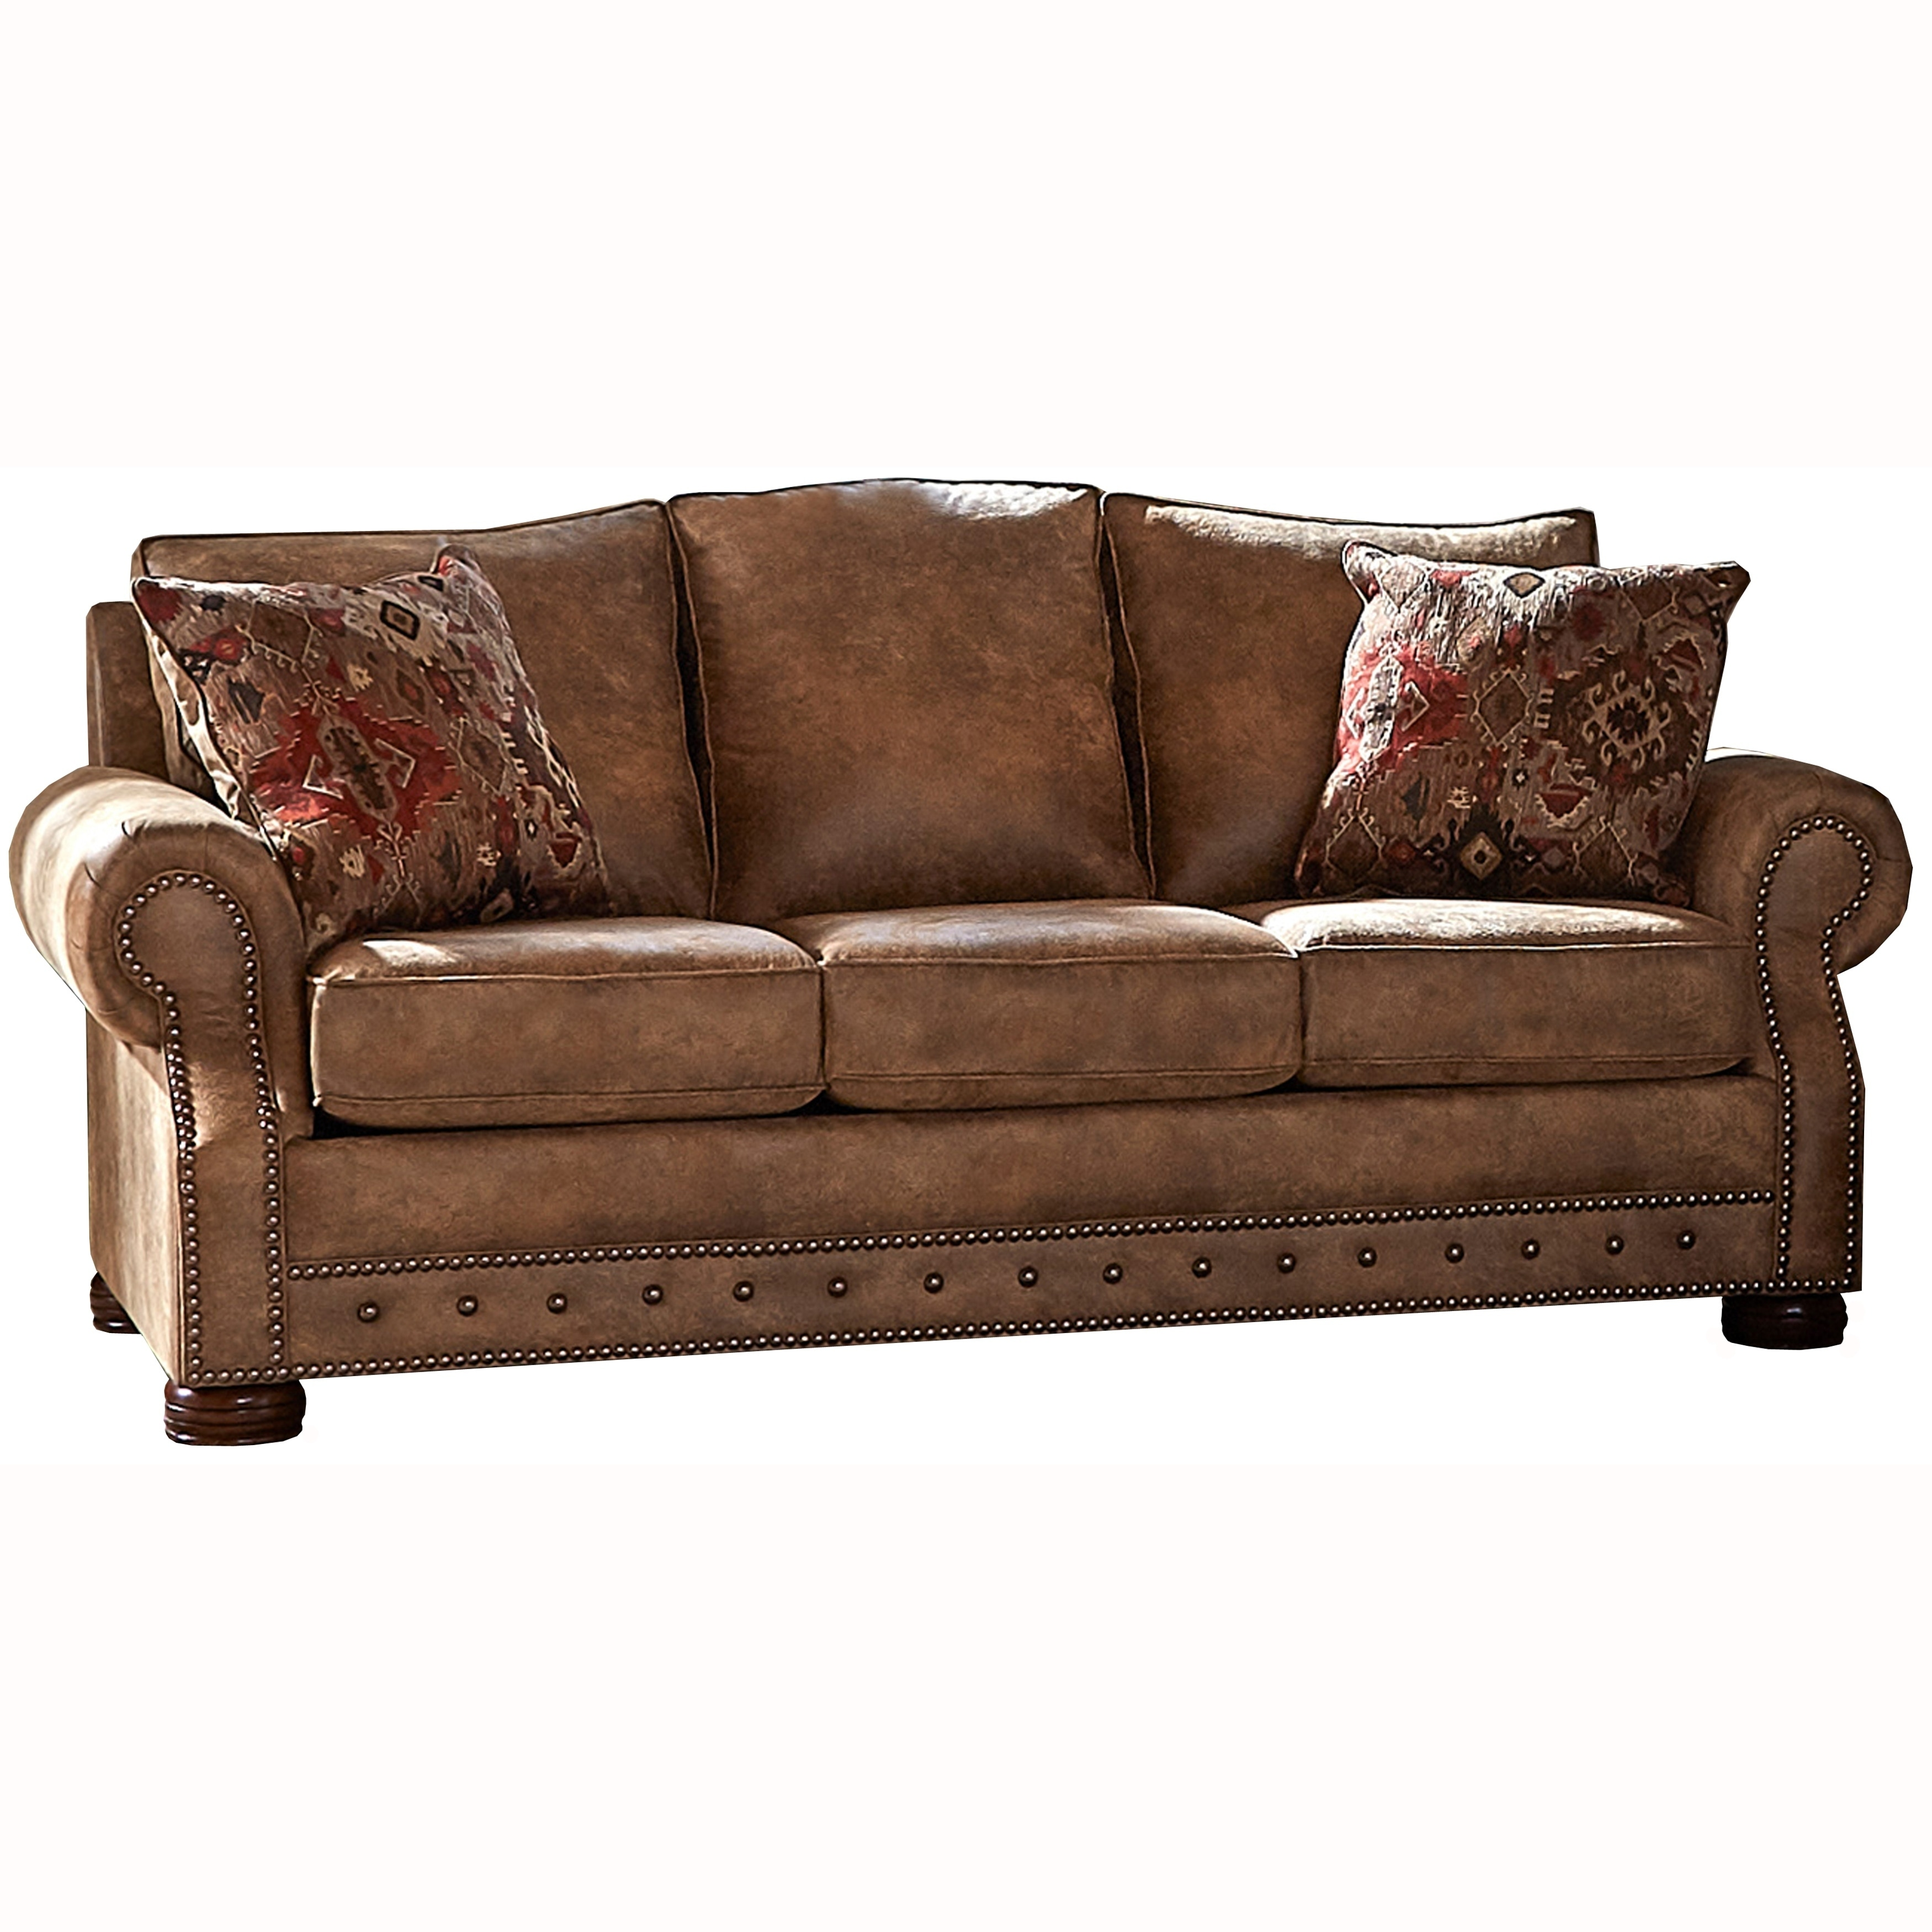 Made in USA Rancho Rustic Brown Buckskin Fabric Sofa and Two Chairs